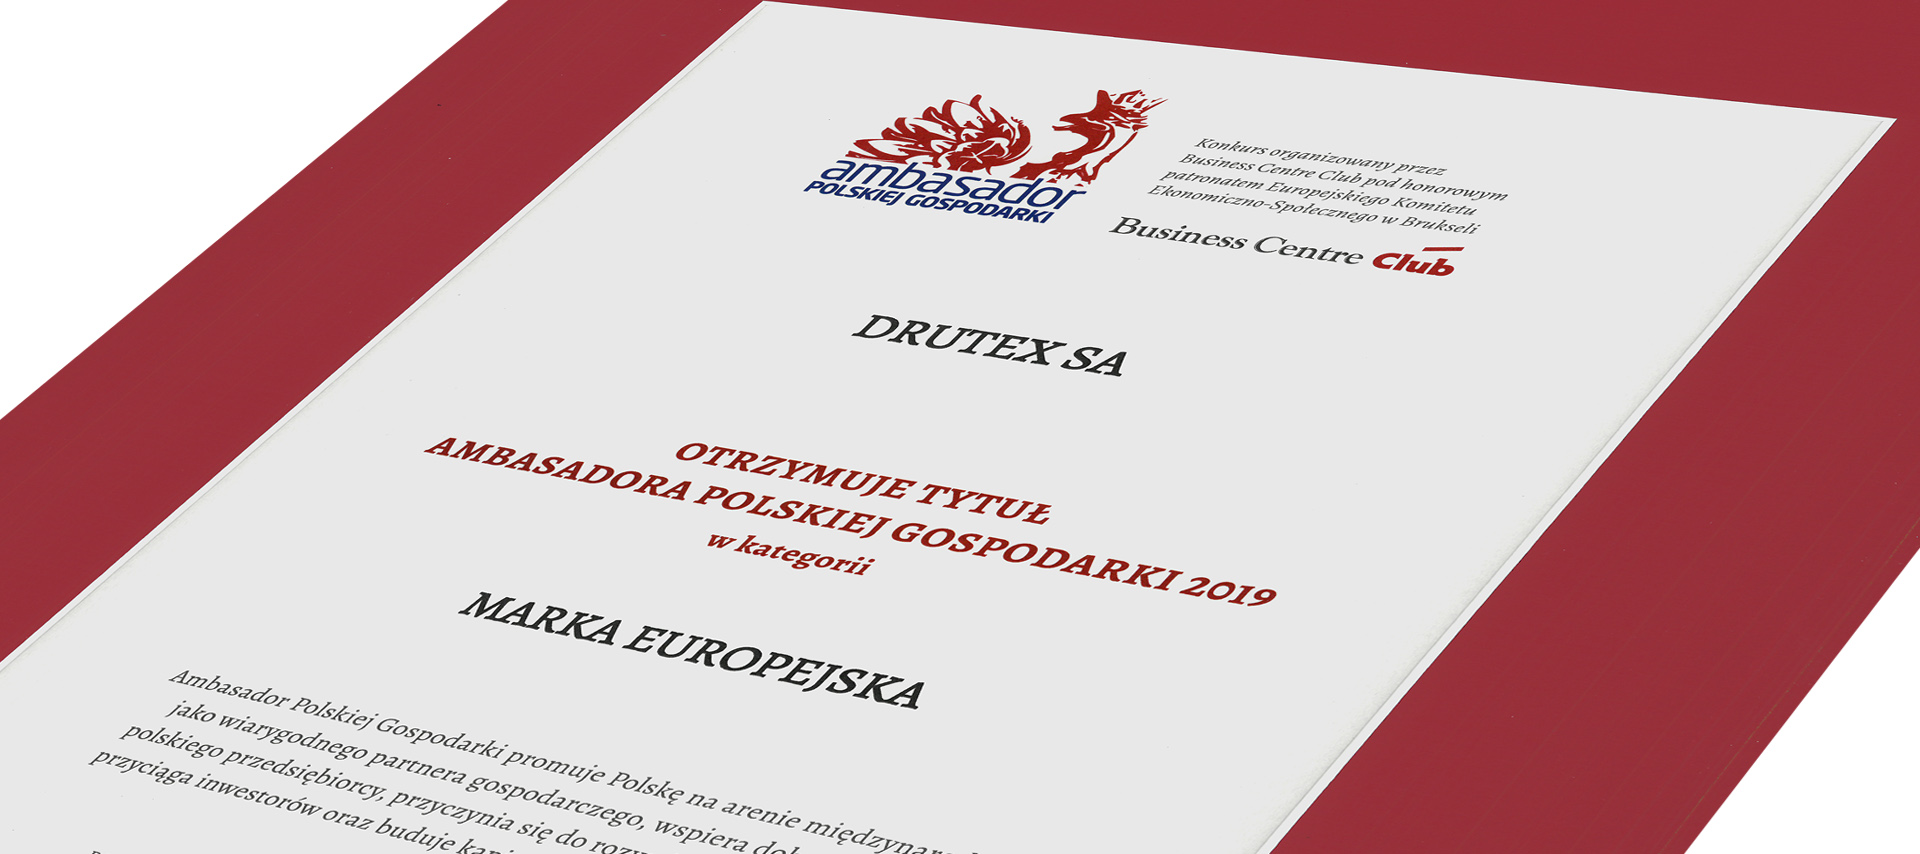 Drutex yet again has been awarded the Ambassador of Polish Economy title